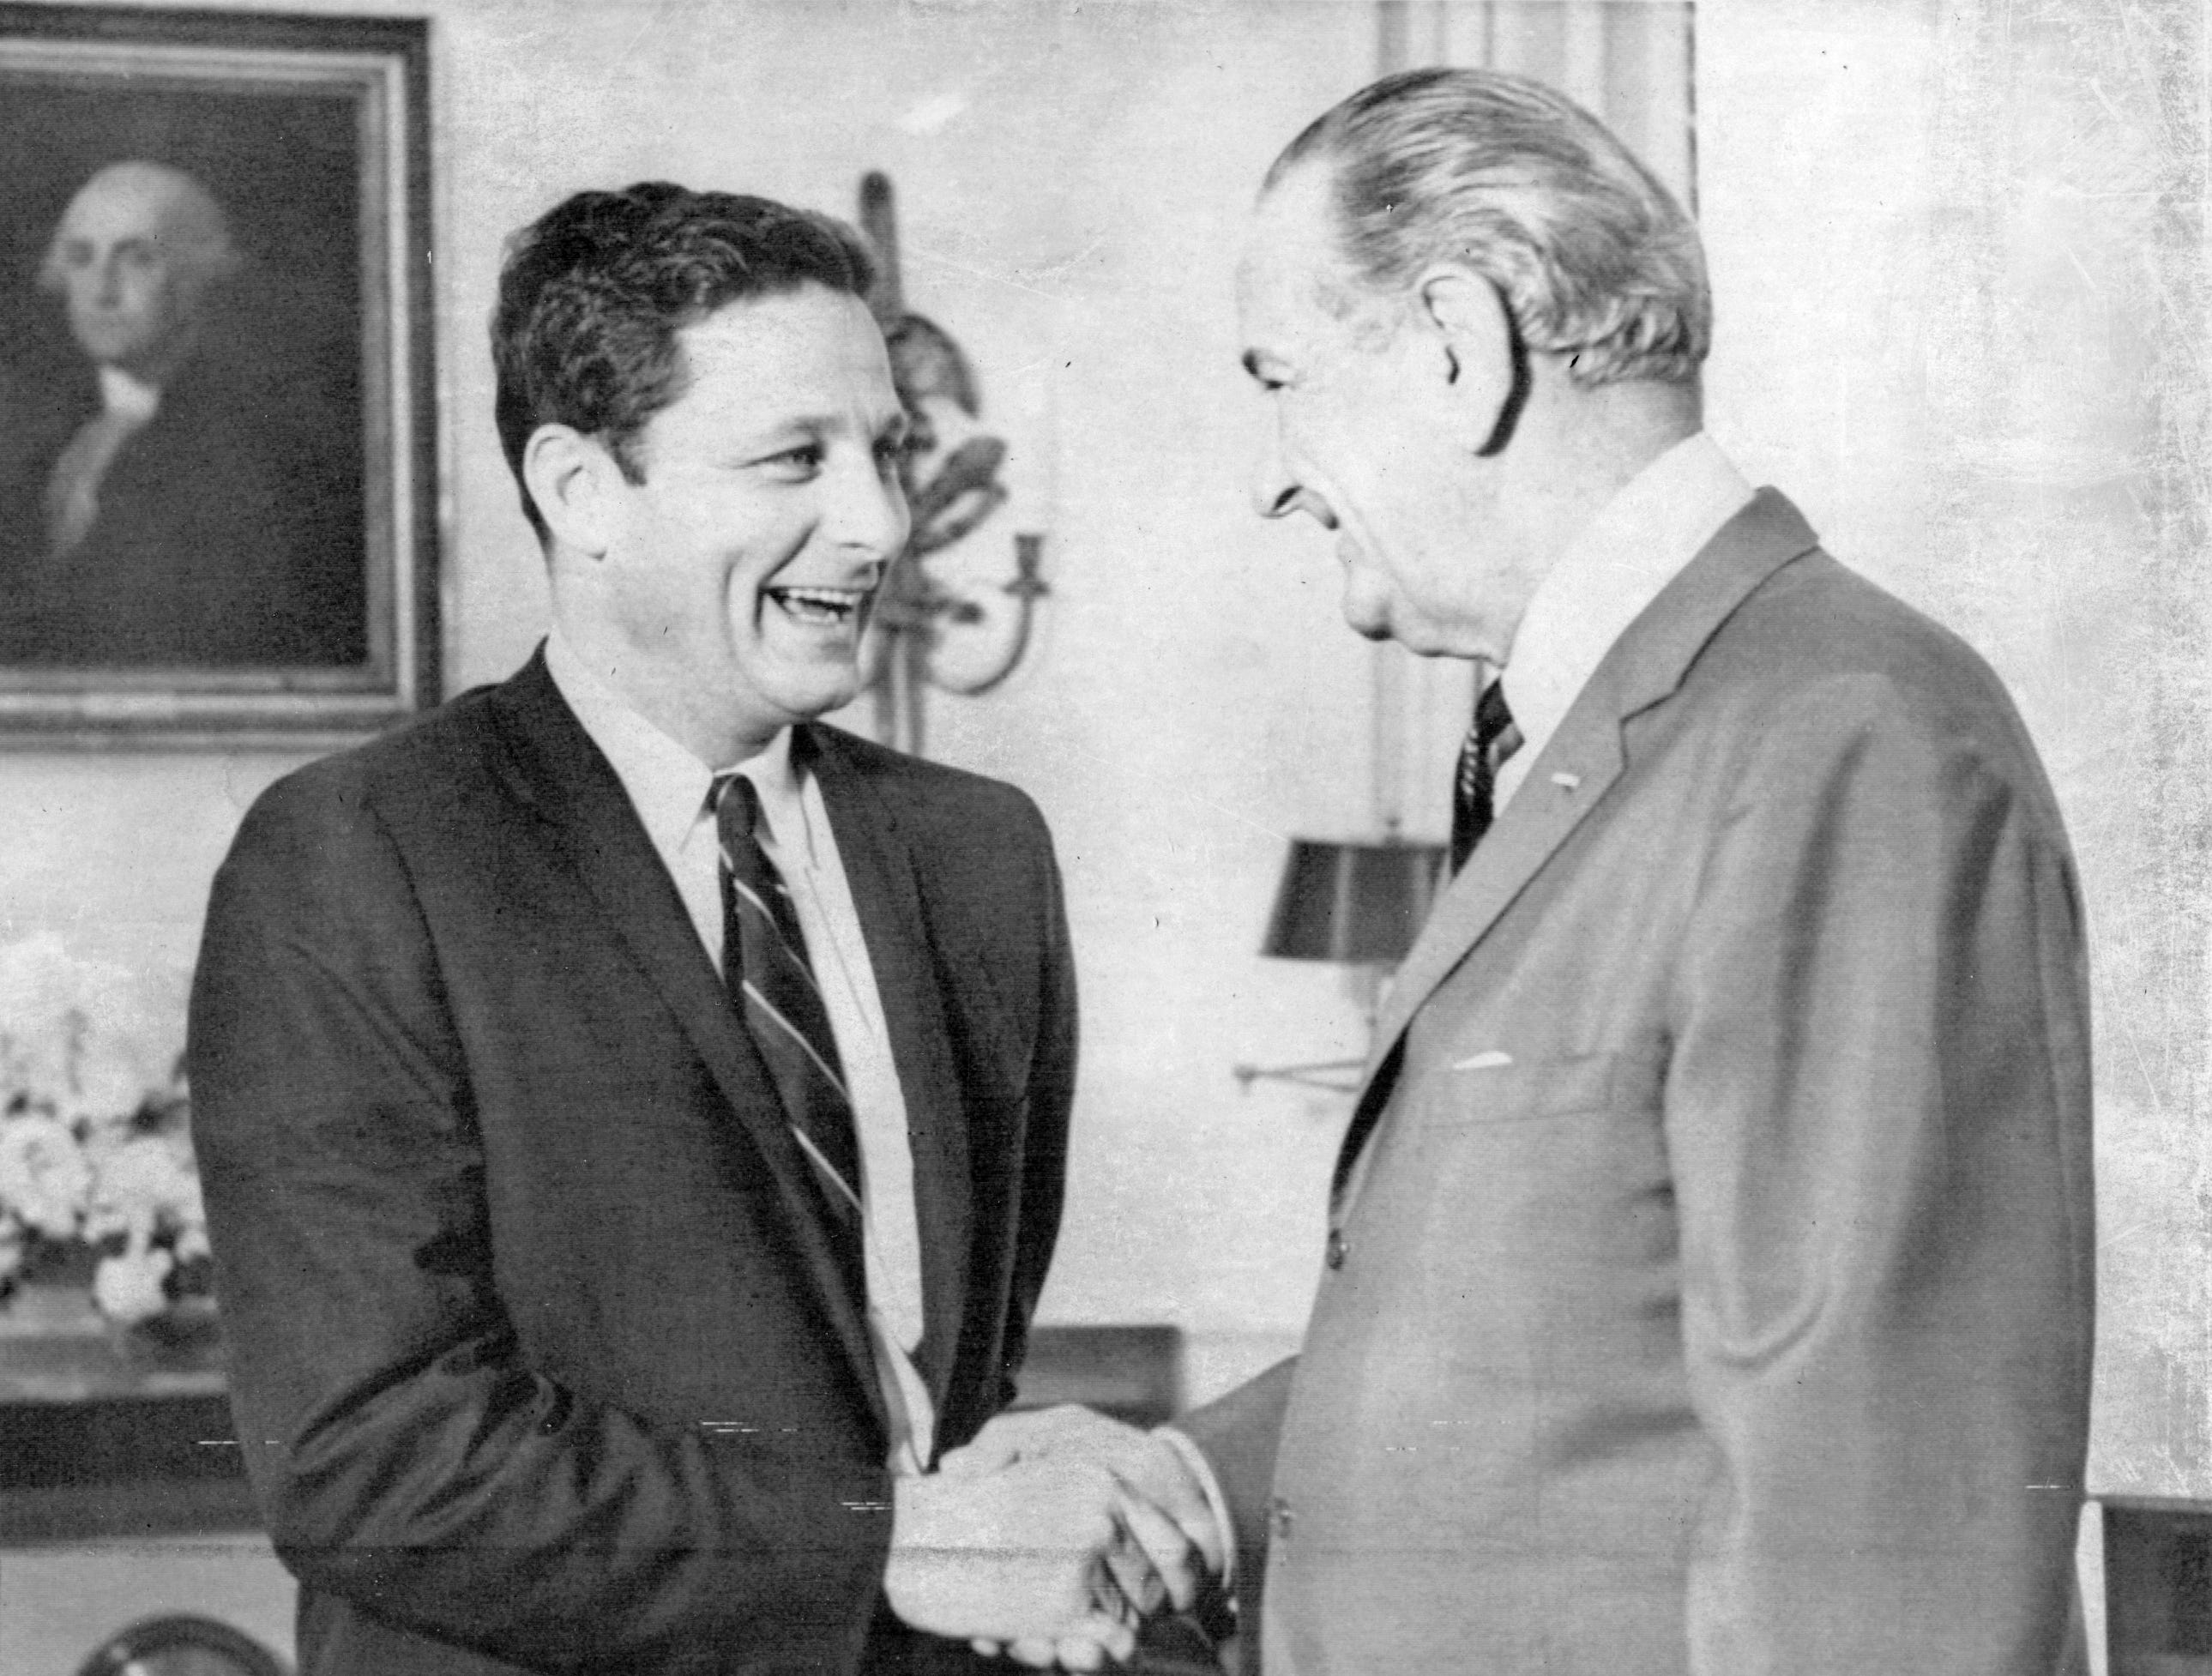 Washington-Sen. Birch Bayh, D-Ind., is greeted by President Johnson as he visited the White House on Nov. 8, 1968.  He earlier told a news conference he believed the election of the president by popular vote would strengthen rather than weaken the two-party system. Bayh was chief sponsor of a constitutional amendment providing for the election of the president and vice president by popular vote.